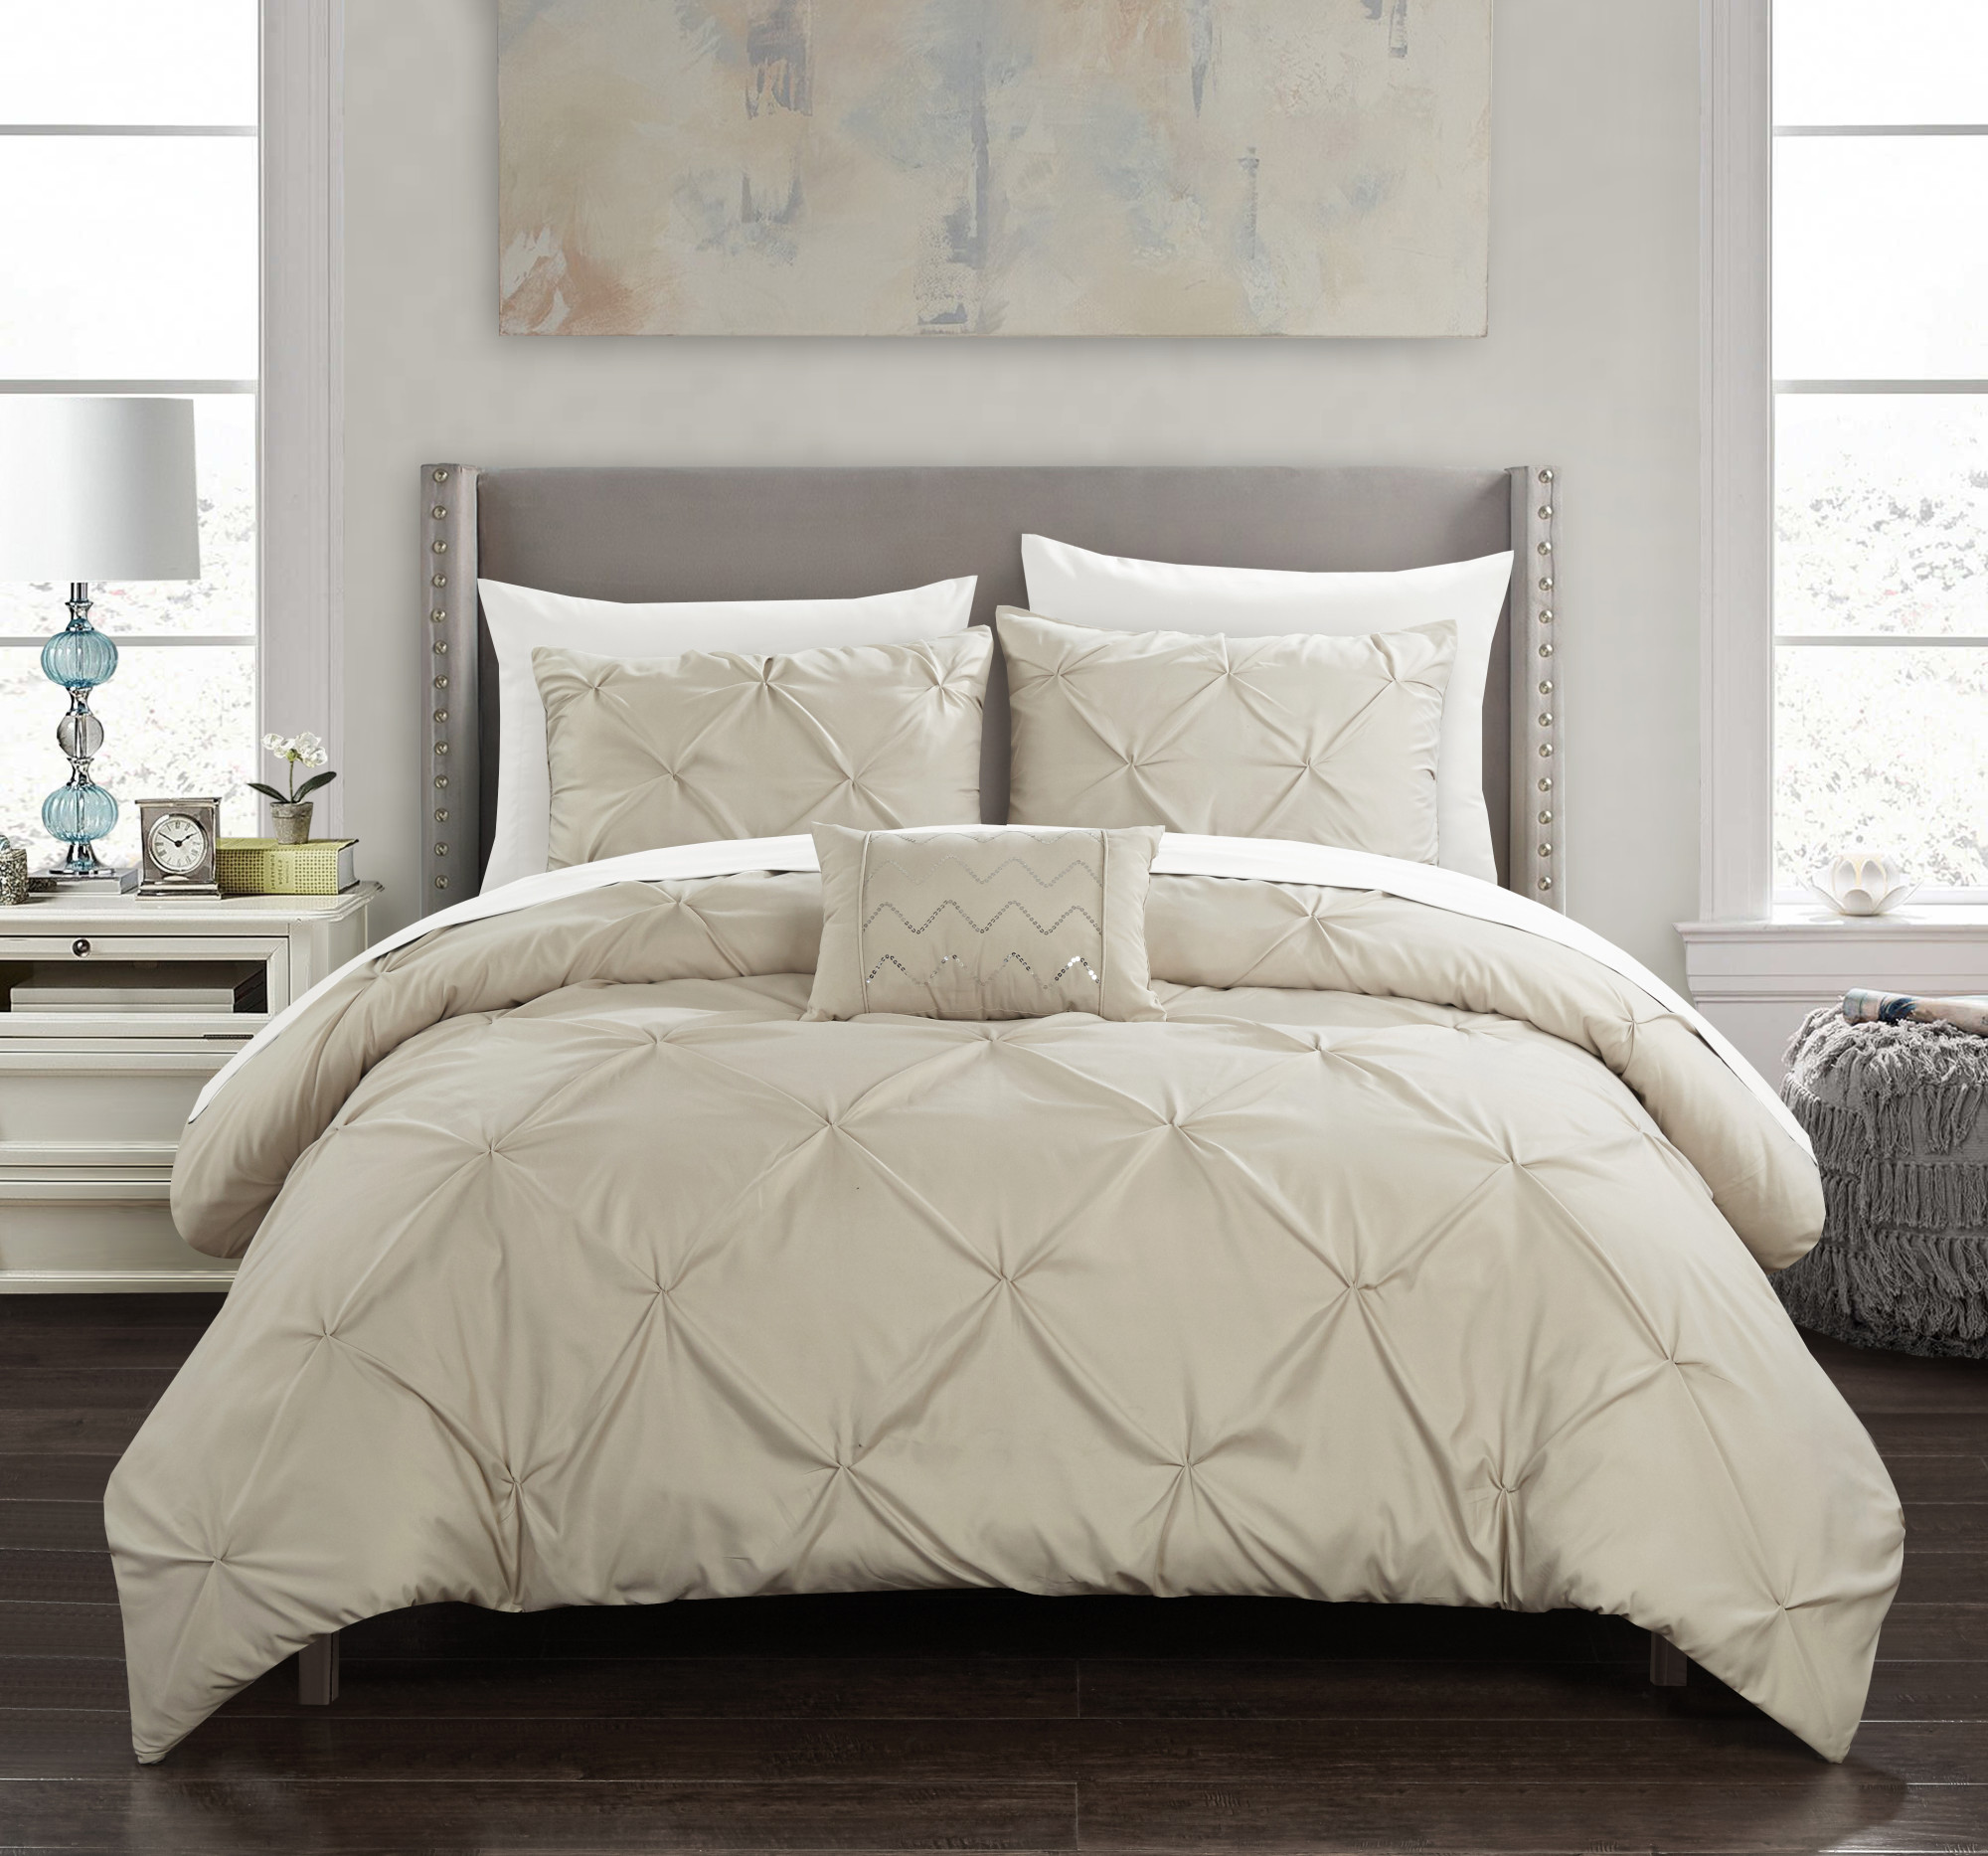 Chic Home Whitley 4 Piece Duvet Cover Set Pinch Pleat